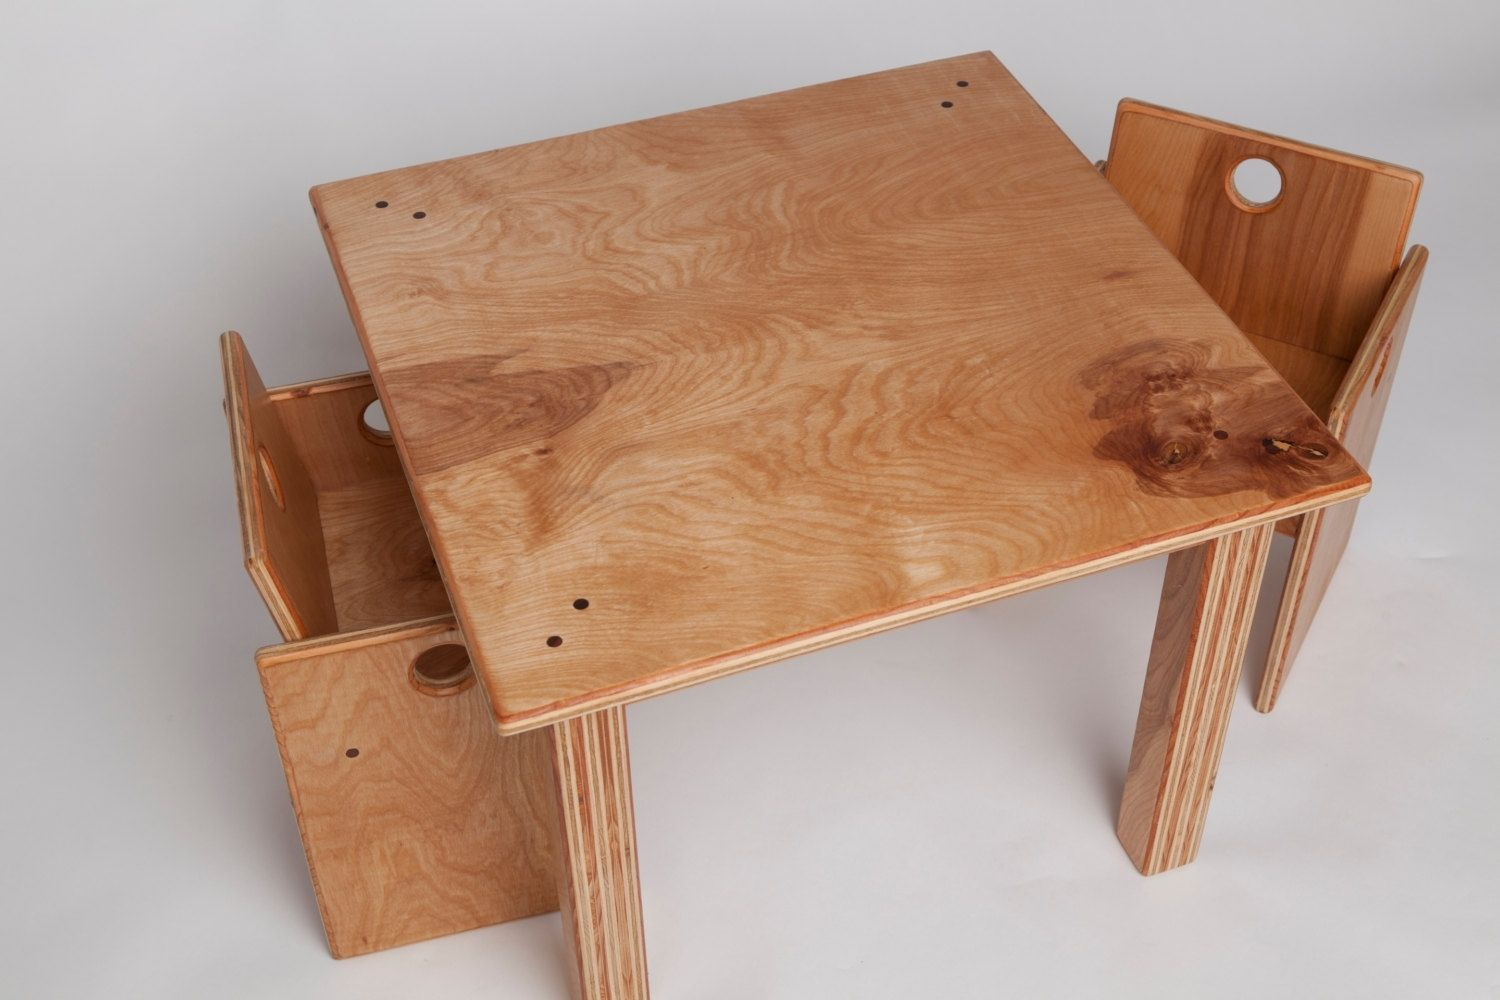 Hand Made Wooden Toddler S Table And Chairs By Fast Industries Llc Custommade Com